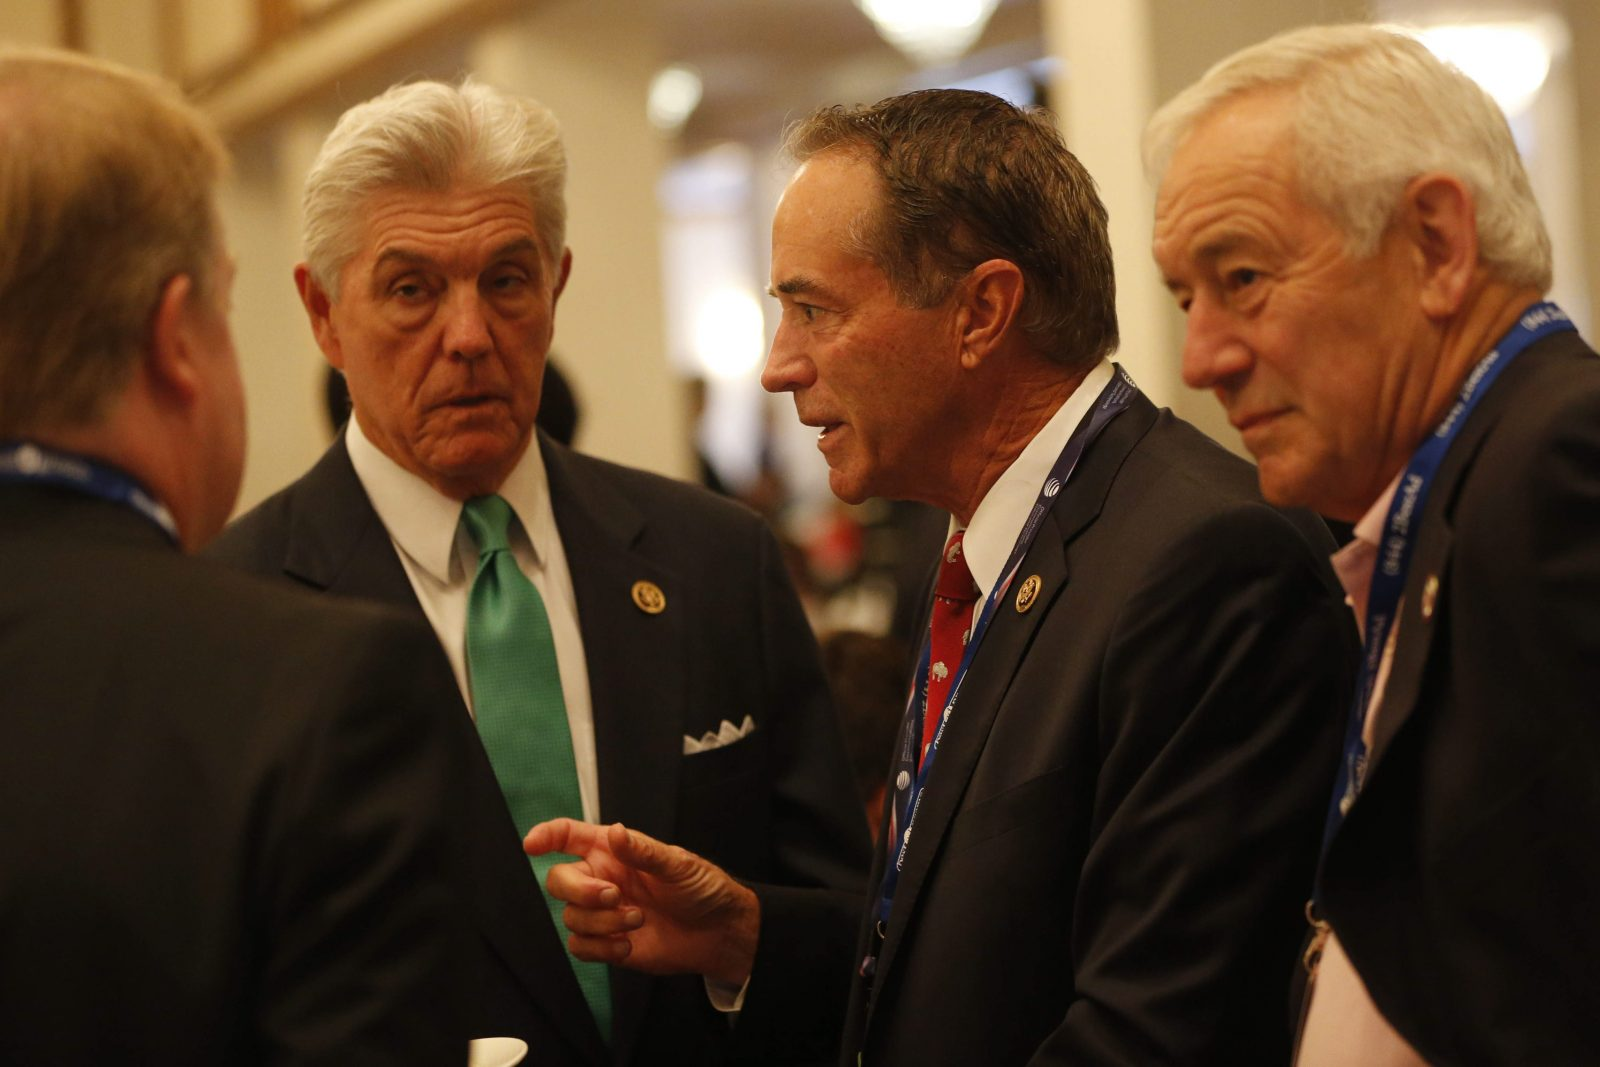 Rep. Chris Collins, center, mingles during the New York Delegation Breakfast at the Renaissance Hotel in Cleveland, Ohio, Tuesday, July 19, 2016. (Photo by Derek Gee)